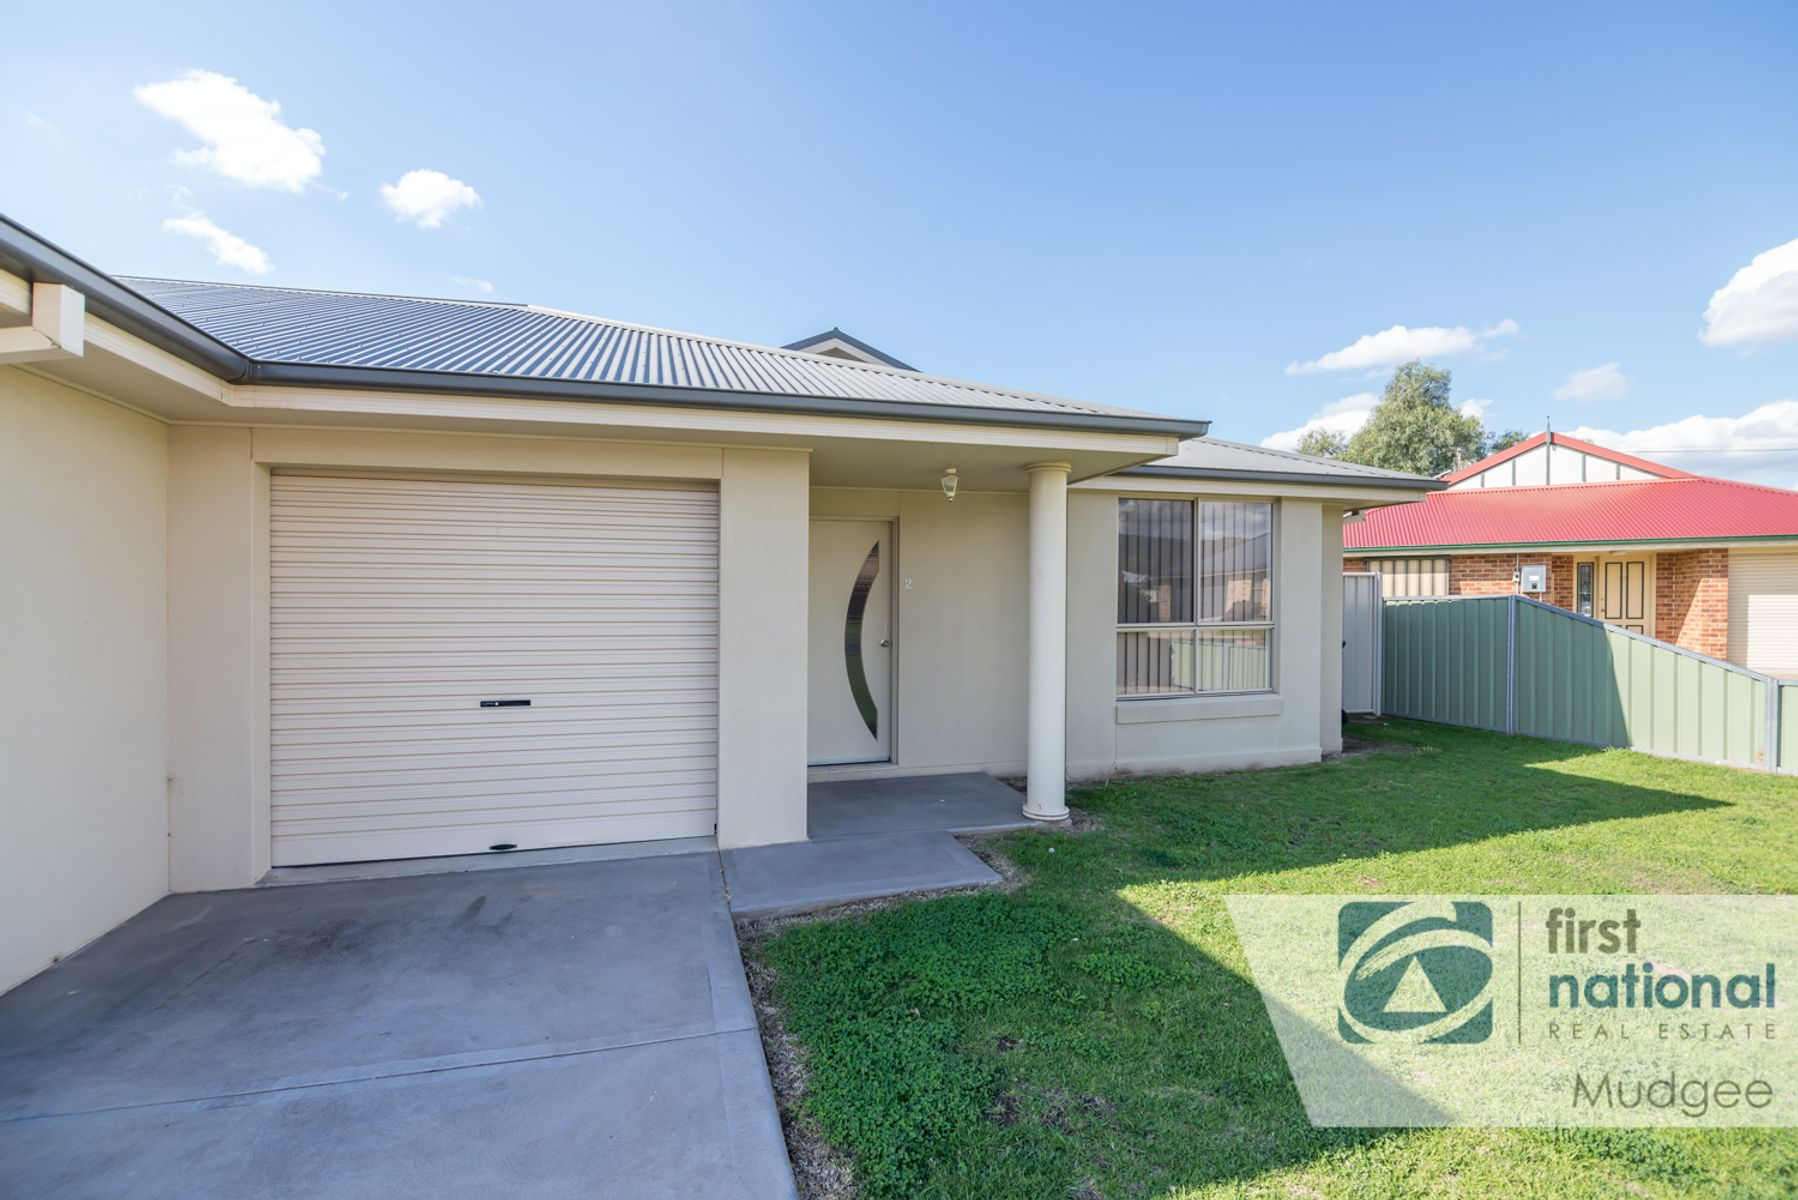 2/5 Thomas Clarke Place, Mudgee, NSW 2850